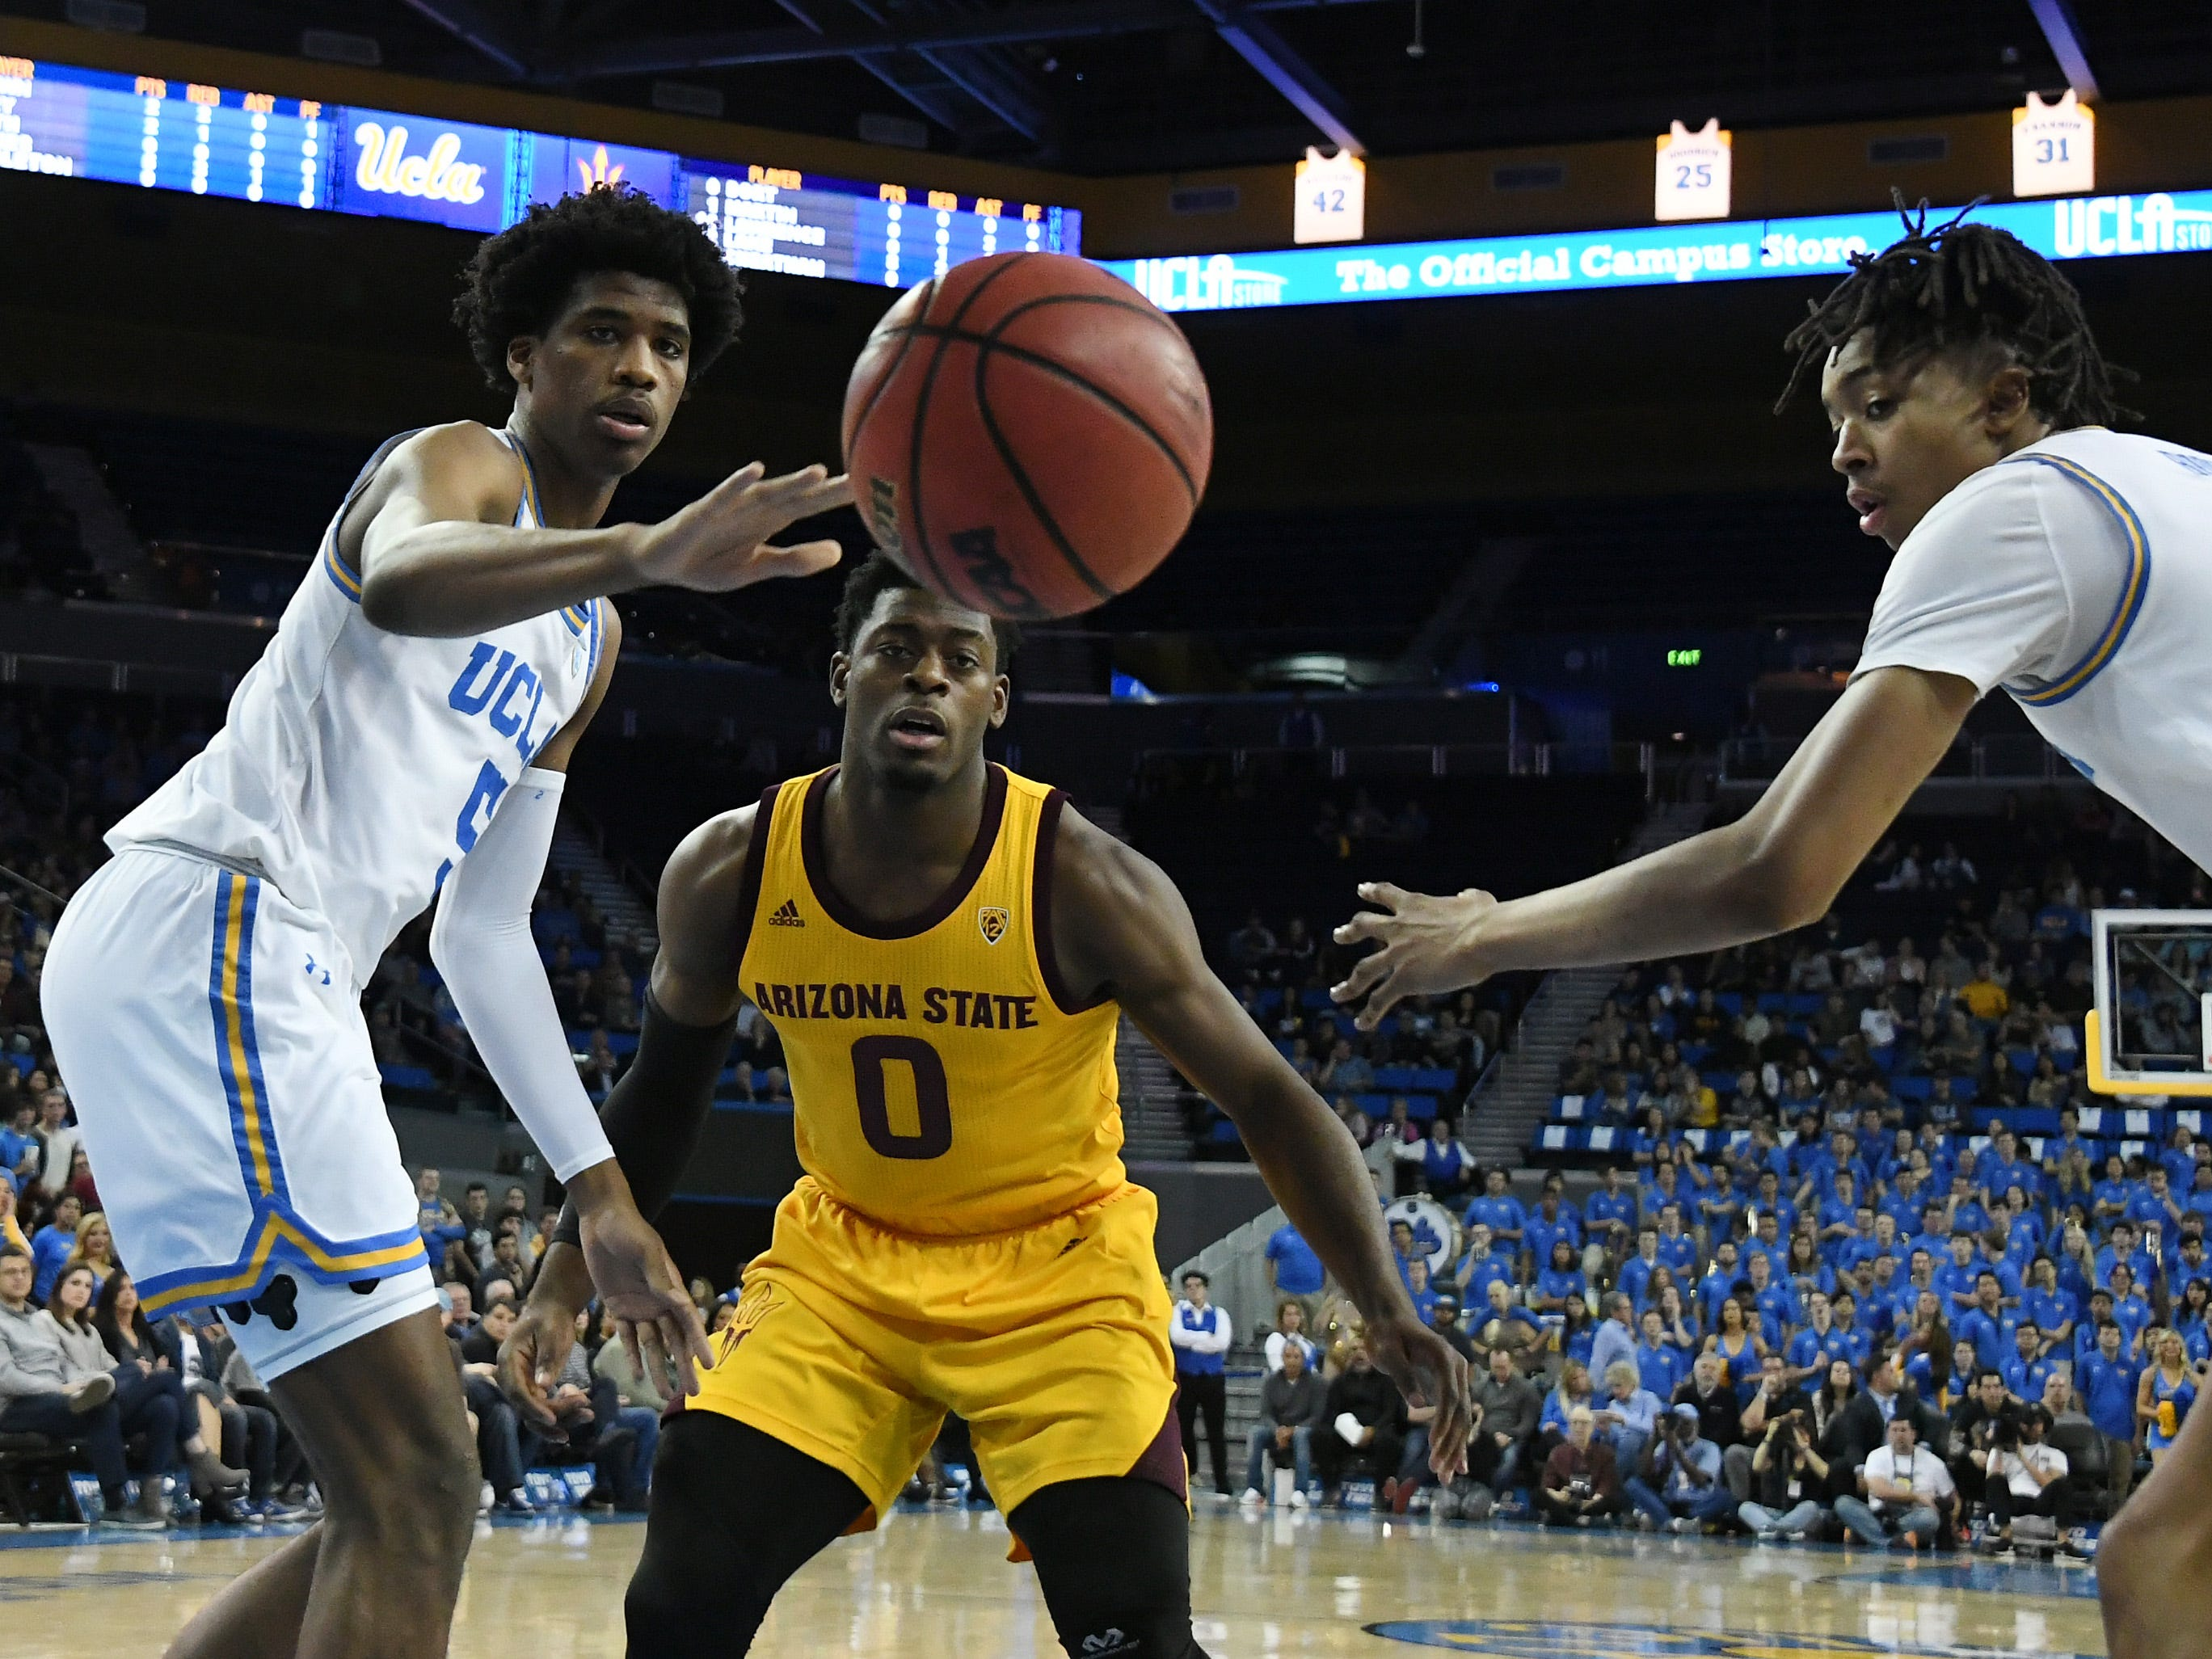 Jan 24, 2019; Los Angeles, CA, USA; UCLA Bruins guard Chris Smith (5) and center Moses Brown (1) battle Arizona State Sun Devils guard Luguentz Dort (0) as the ball bounces out of bounds during the first half at Pauley Pavilion. Mandatory Credit: Richard Mackson-USA TODAY Sports